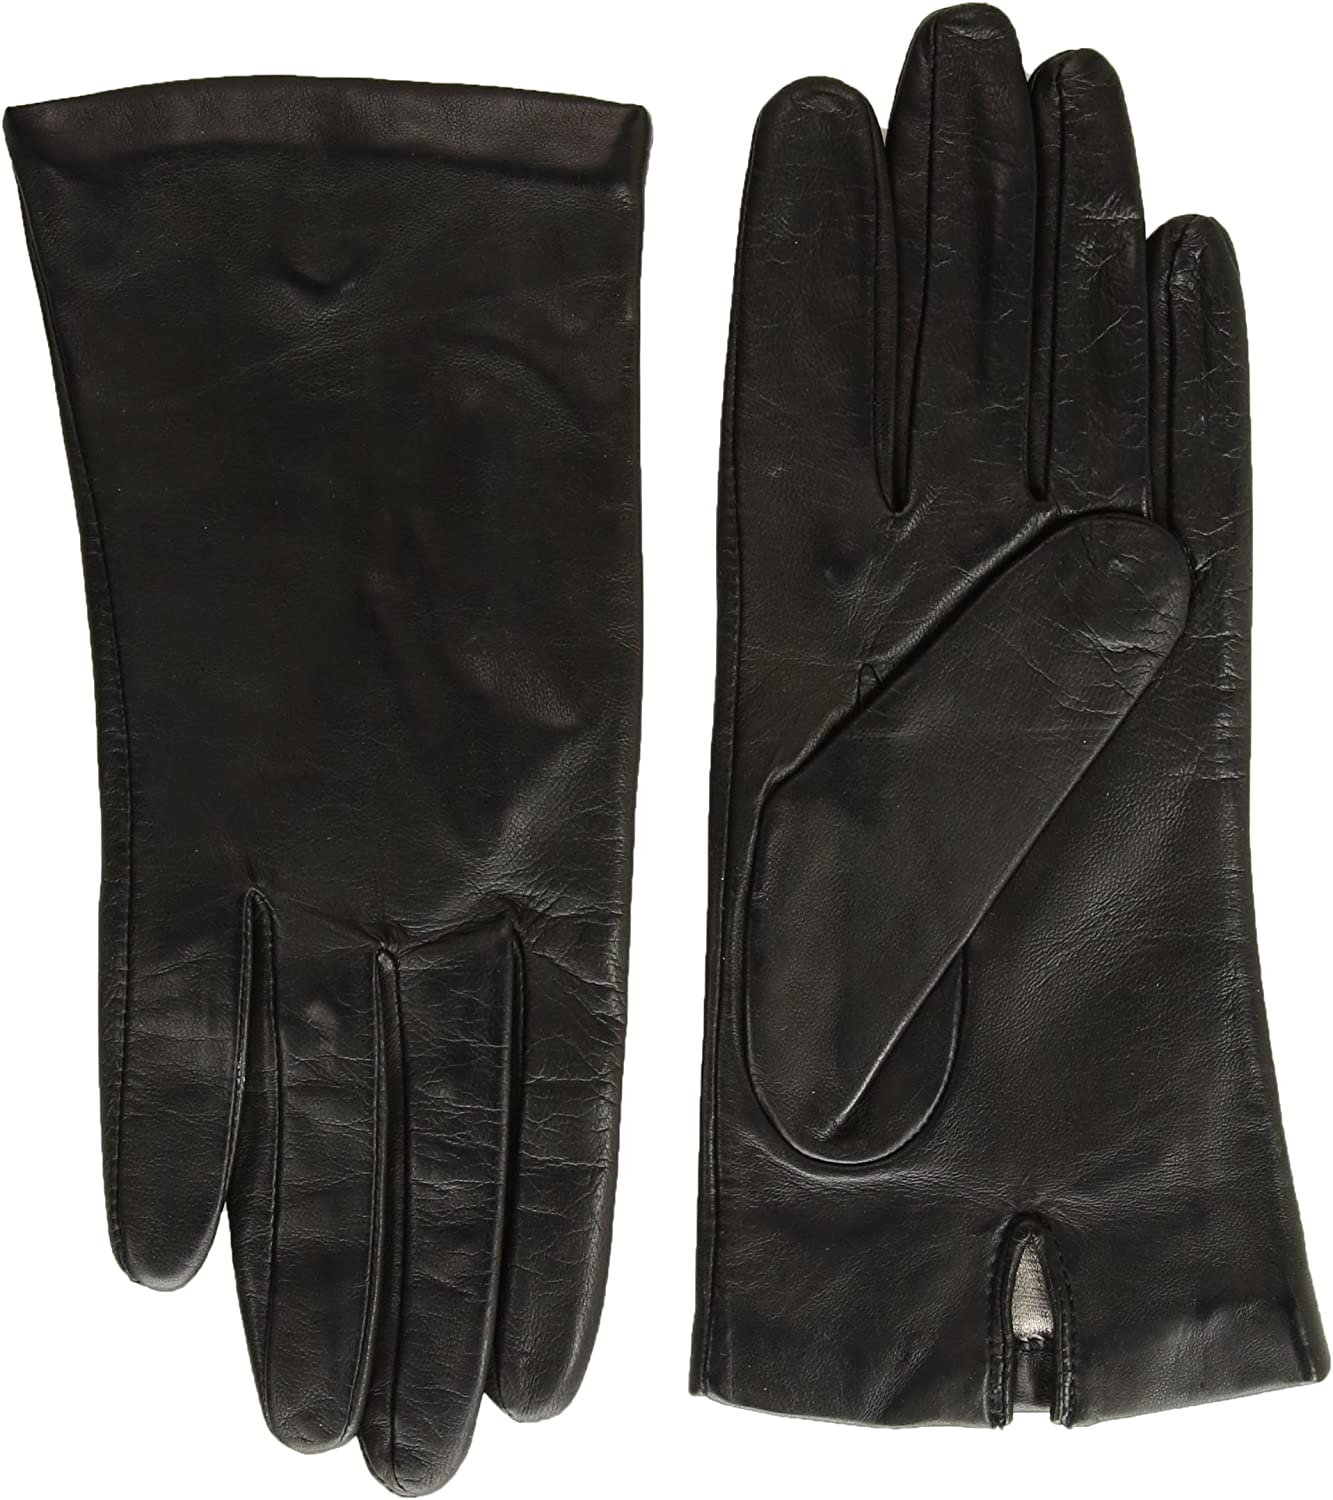 New WOMENS size 7.5 EXTRA LONG SILK LINED BLACK LAMBSKIN LEATHER GLOVES